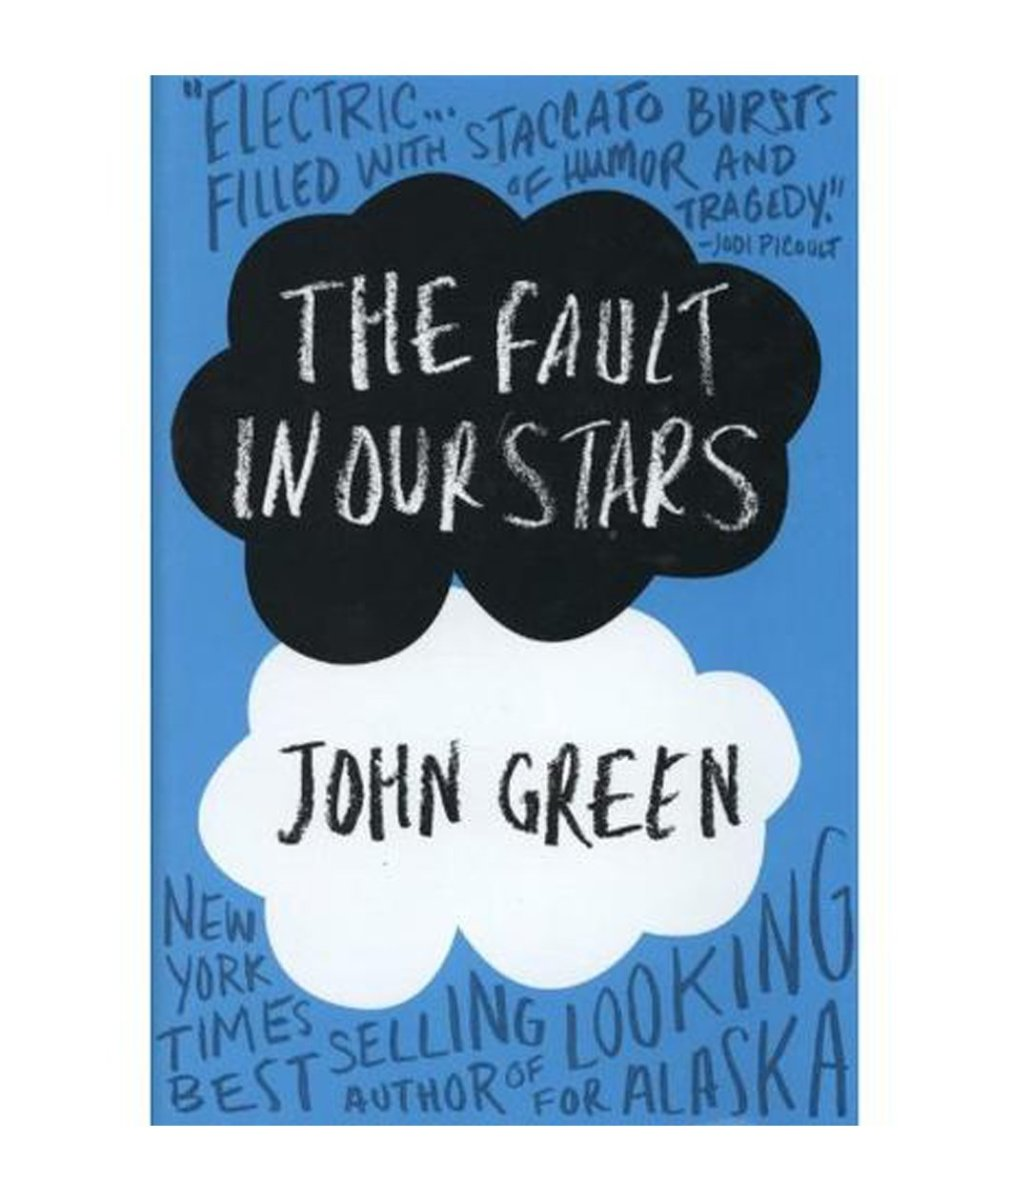 books-like-the-fault-in-our-stars-